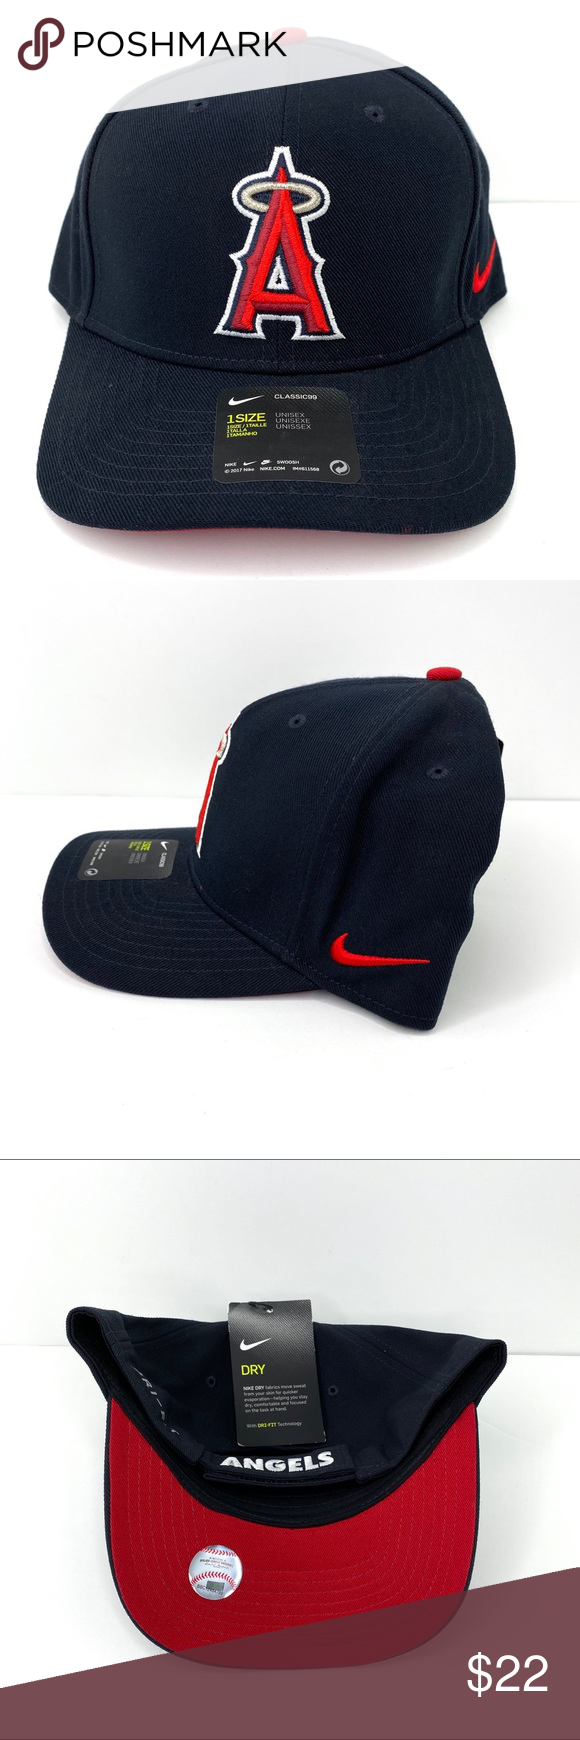 Nike Official Mlb Shop Angels Dri Fit Snapback Nike Accessories Nike Navy Fabric